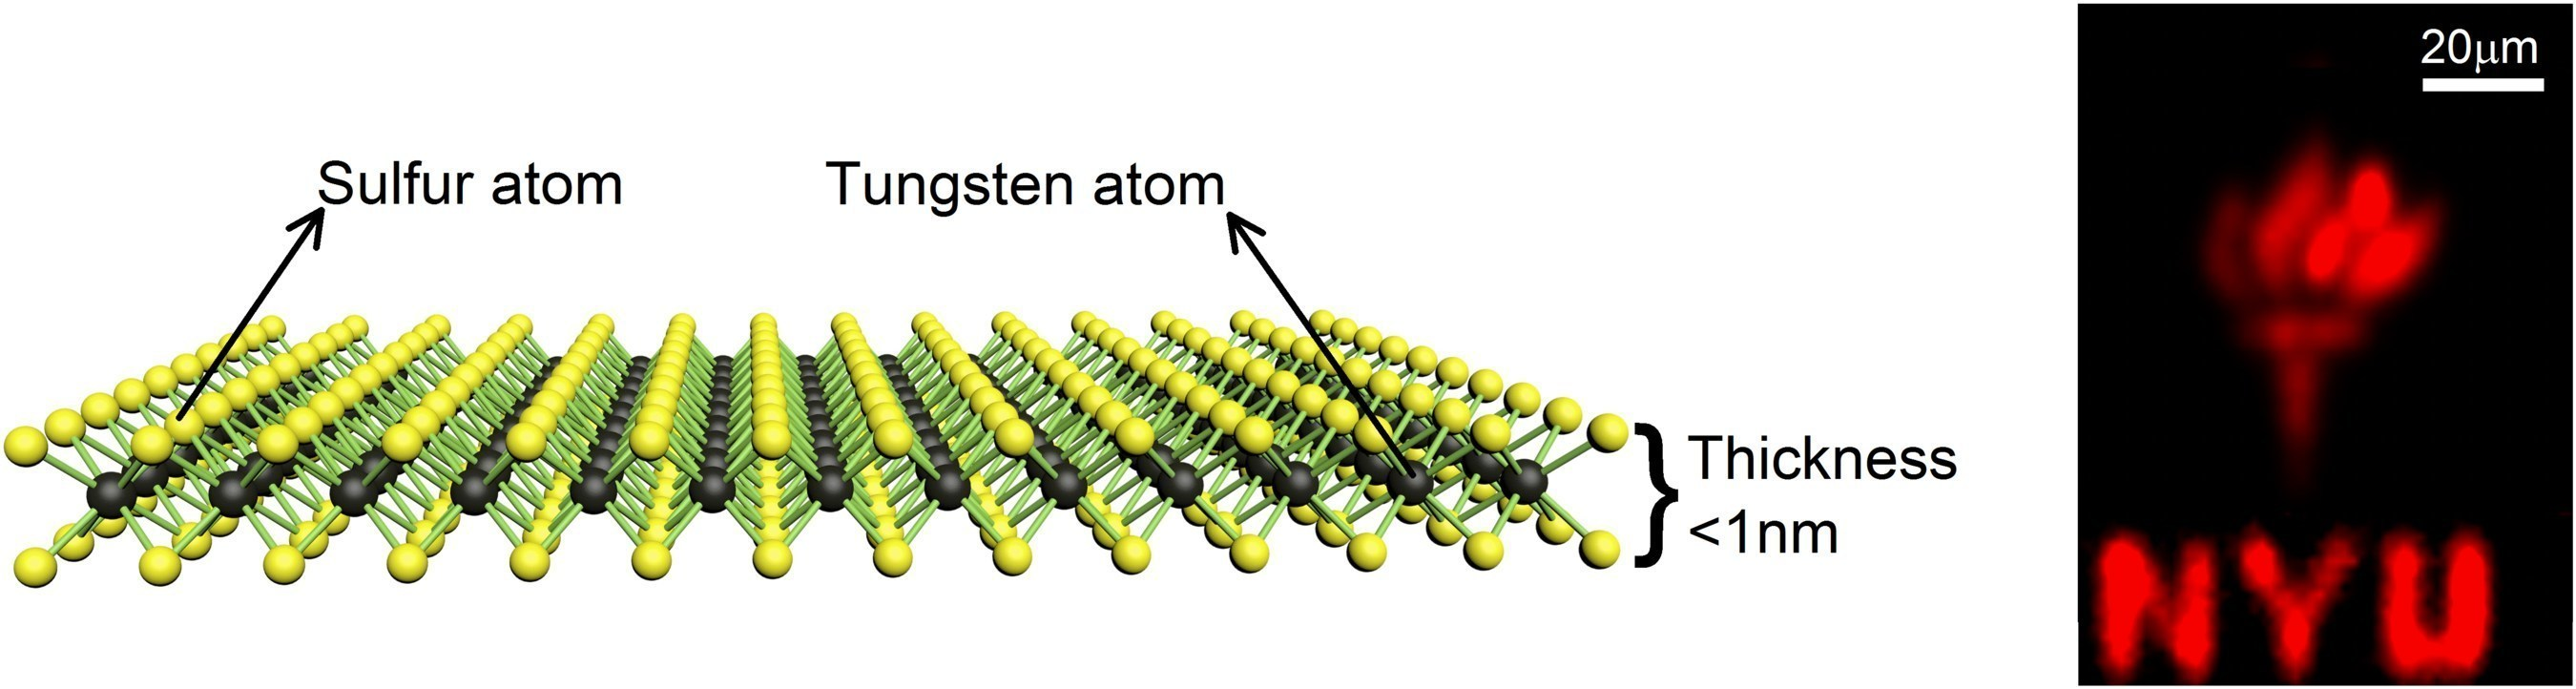 At just one atom thick, tungsten disulfide allows energy to switch off and on -- important for nano-scale electronic transistors -- but it also absorbs and emits light, which could find applications in optoelectronics, sensing, and flexible electronics. The NYU logo shows the monolayer material emitting light. Researchers at NYU Tandon reported success in growing the promising monolayer material.